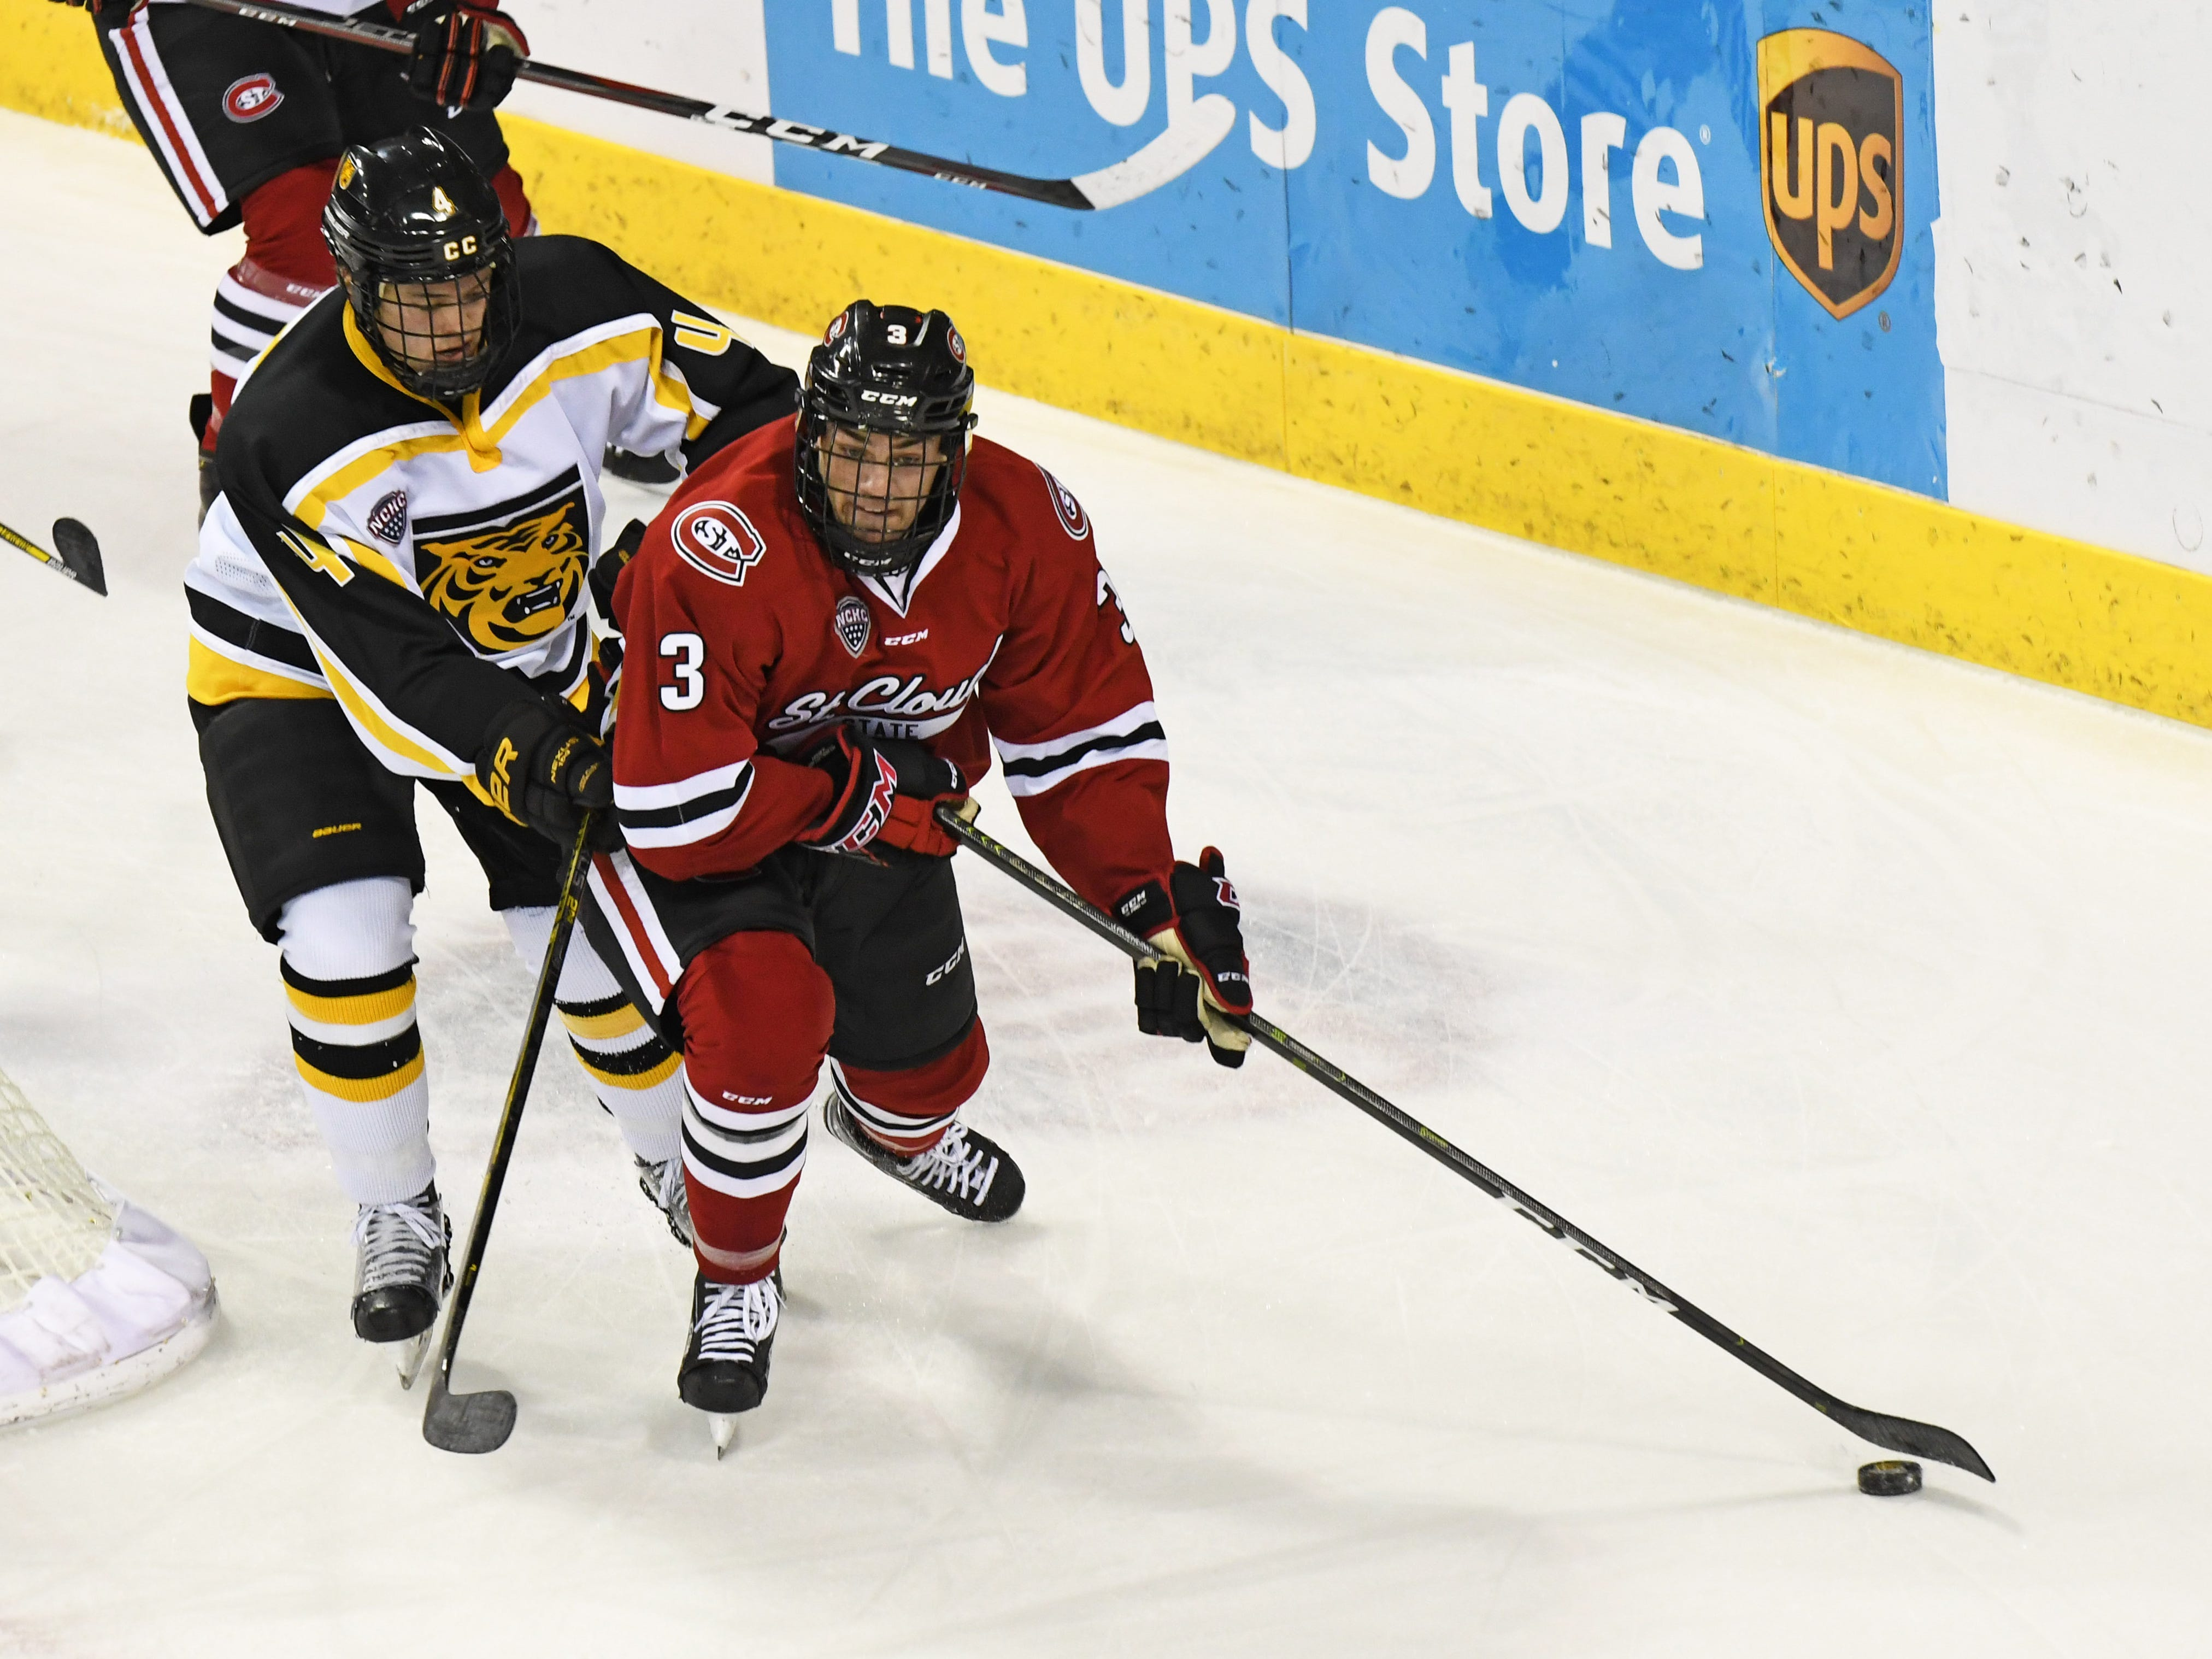 SCSU comes back from 2-goal deficit, beats Colorado College